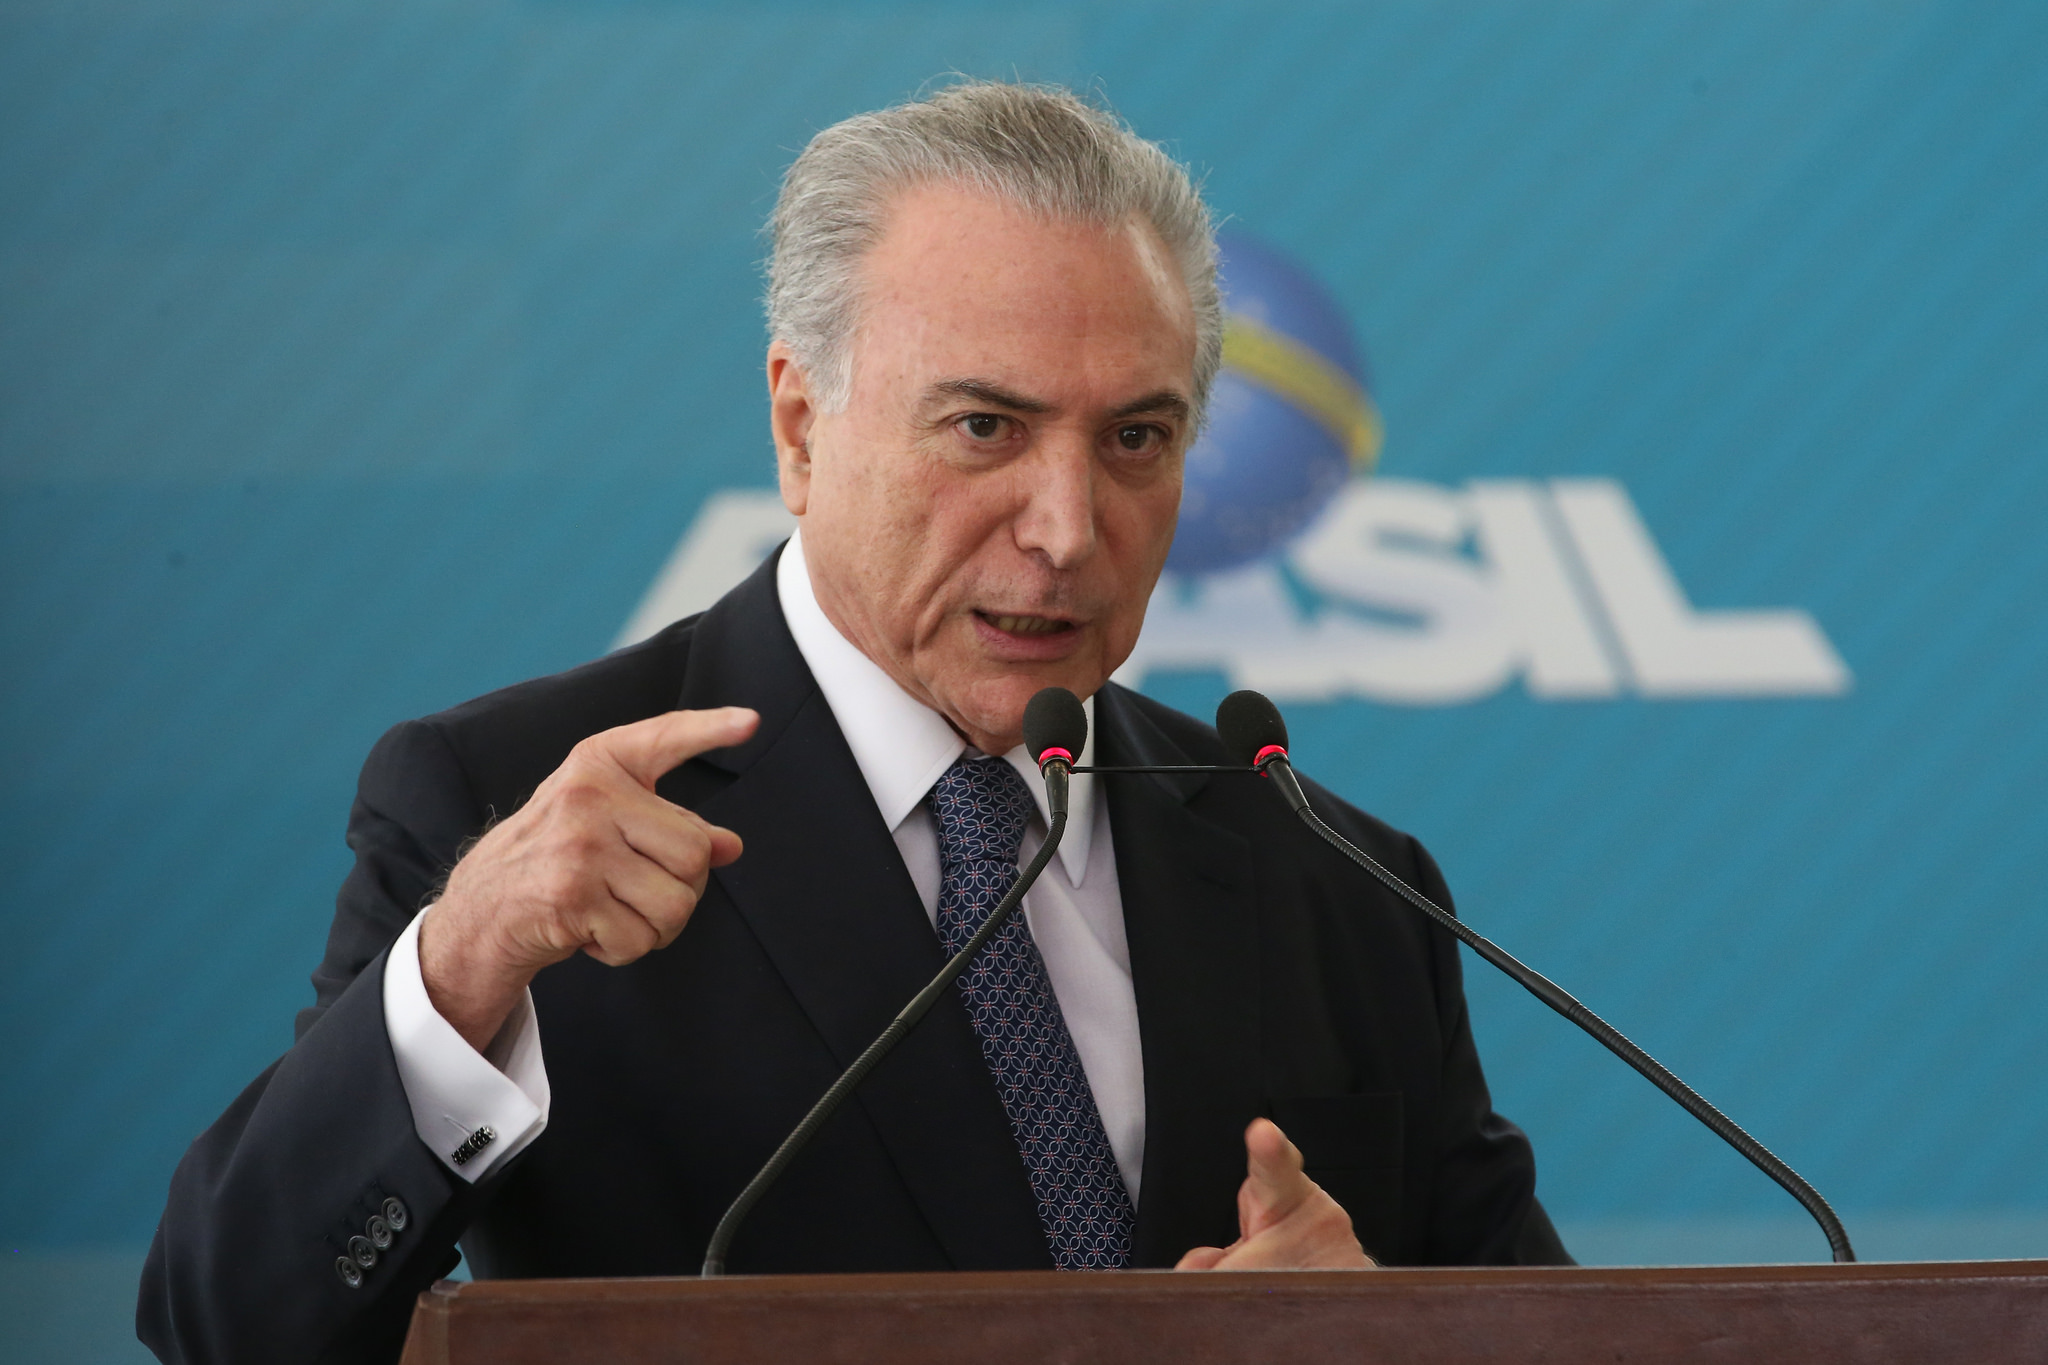 Michel Temer is not under investigation since, as president, he has temporary immunity from any crimes committed before he took office. (Photo by Agência Brasil Fotografias/Flickr, CC BY 2.0)